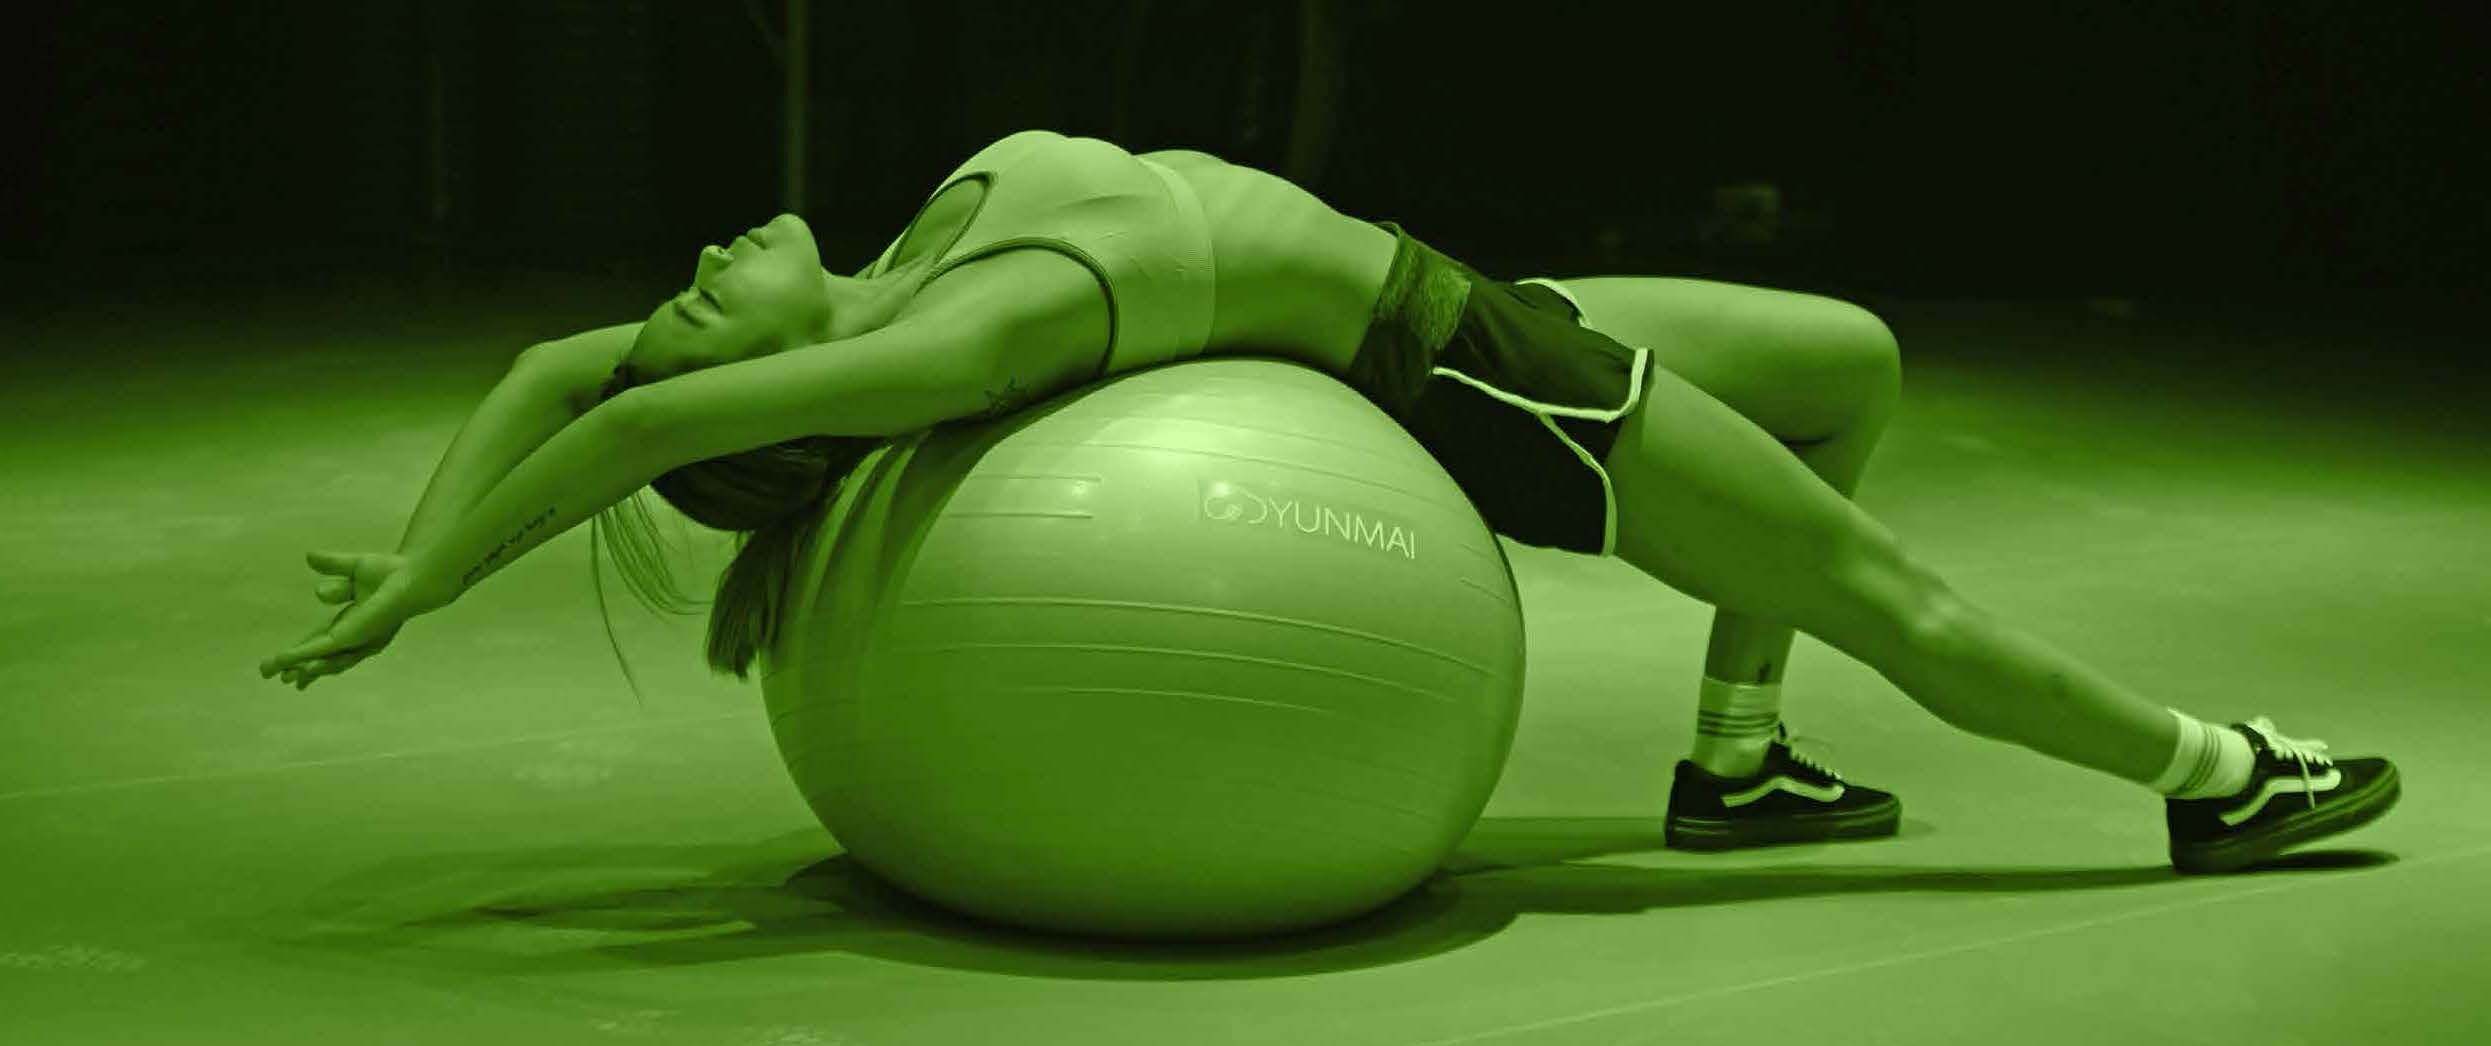 Image of woman lying back on gym ball with arms stretched out